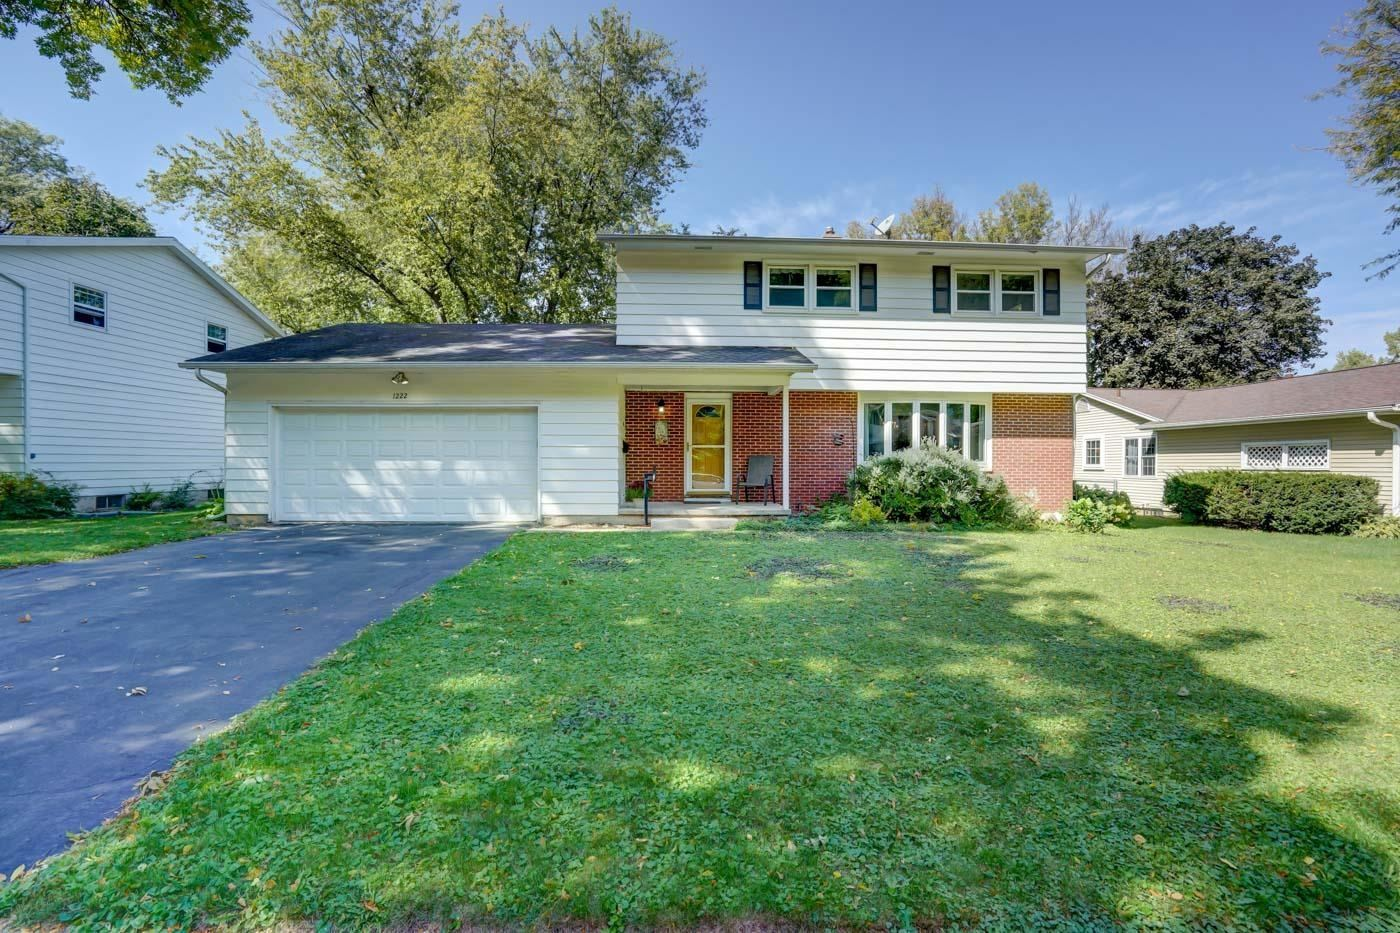 Photo for 1222 Meadowlark Dr, Madison, WI 53716 (MLS # 1920739)